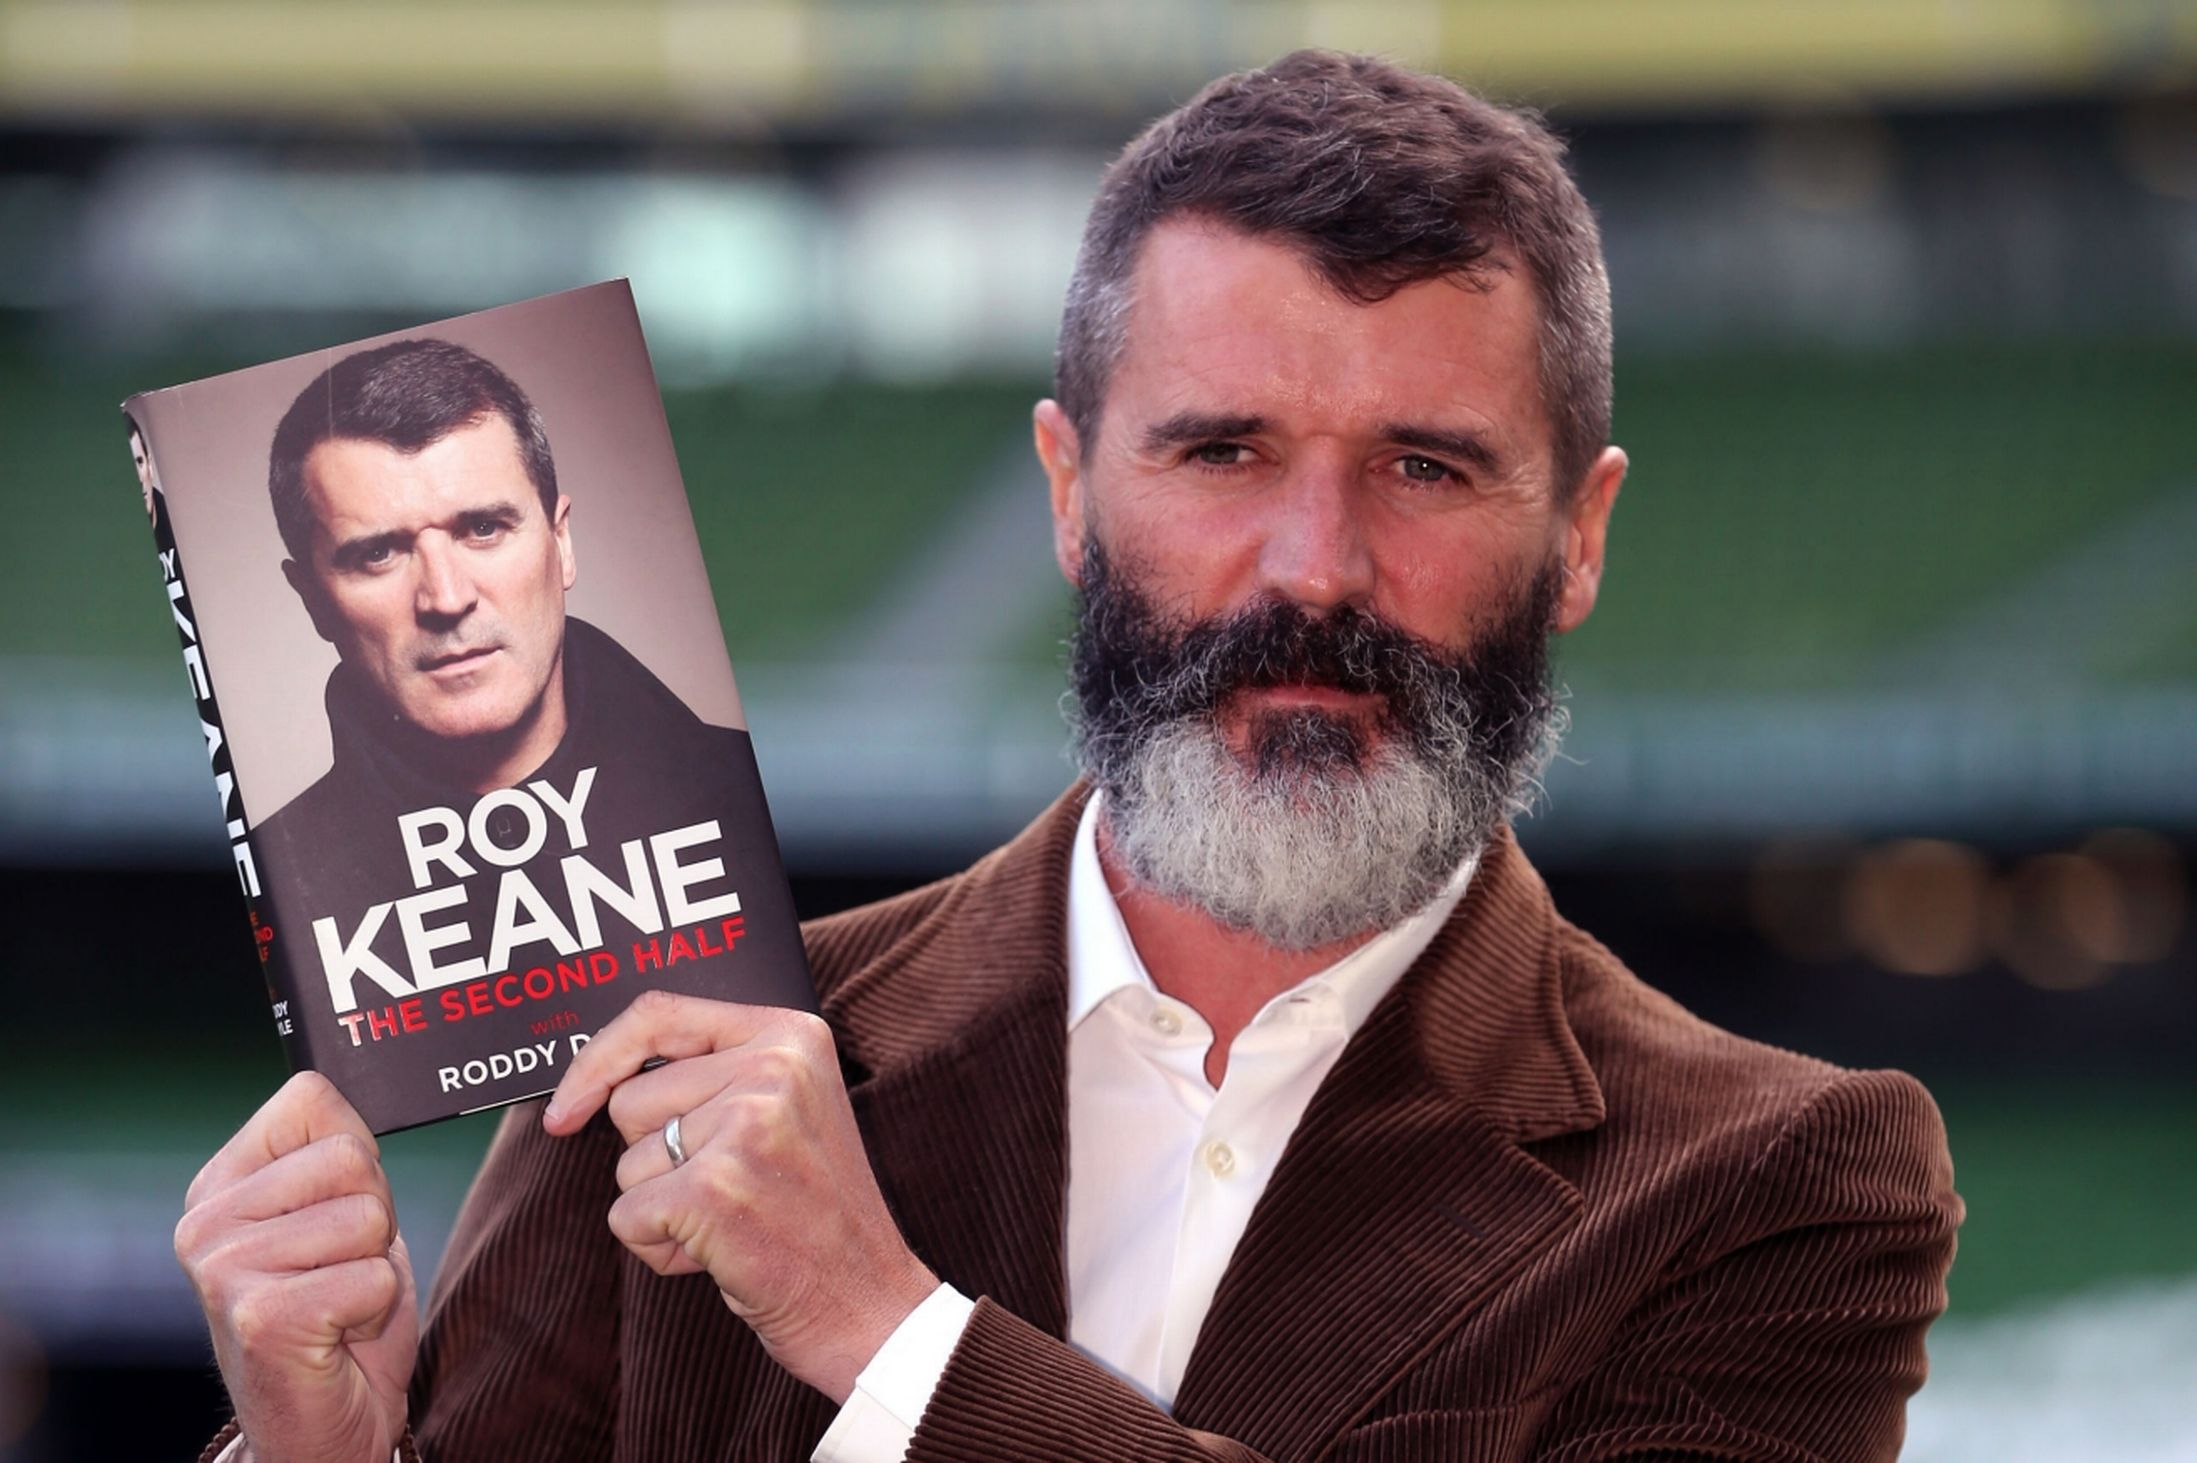 Roy Keane says faith means a lot to him Catholicireland